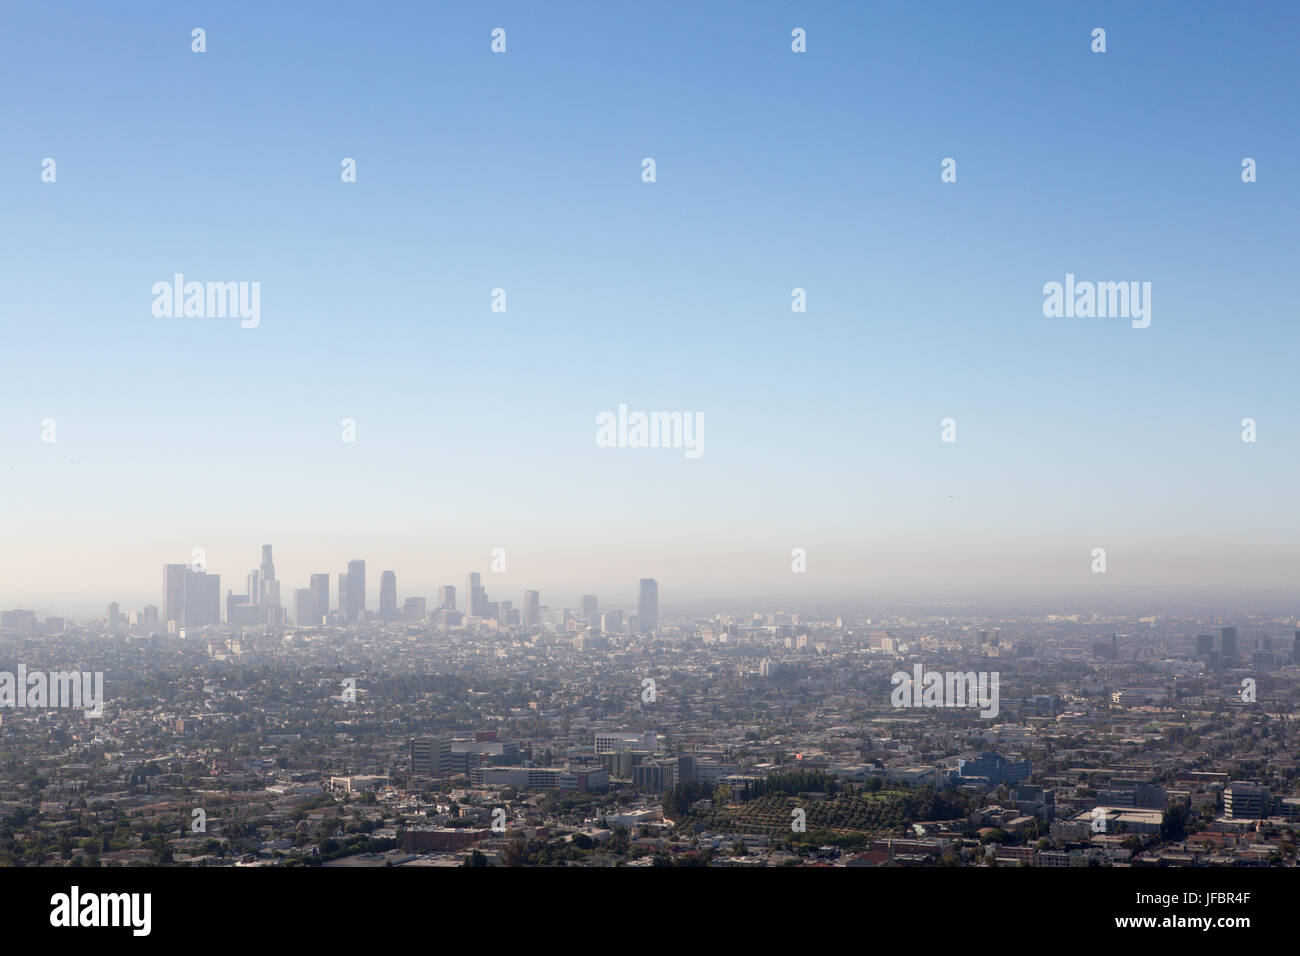 A view to downtown Los Angeles and surroundings from Griffith Observatory. Air pollution is visible over the city. - Stock Image